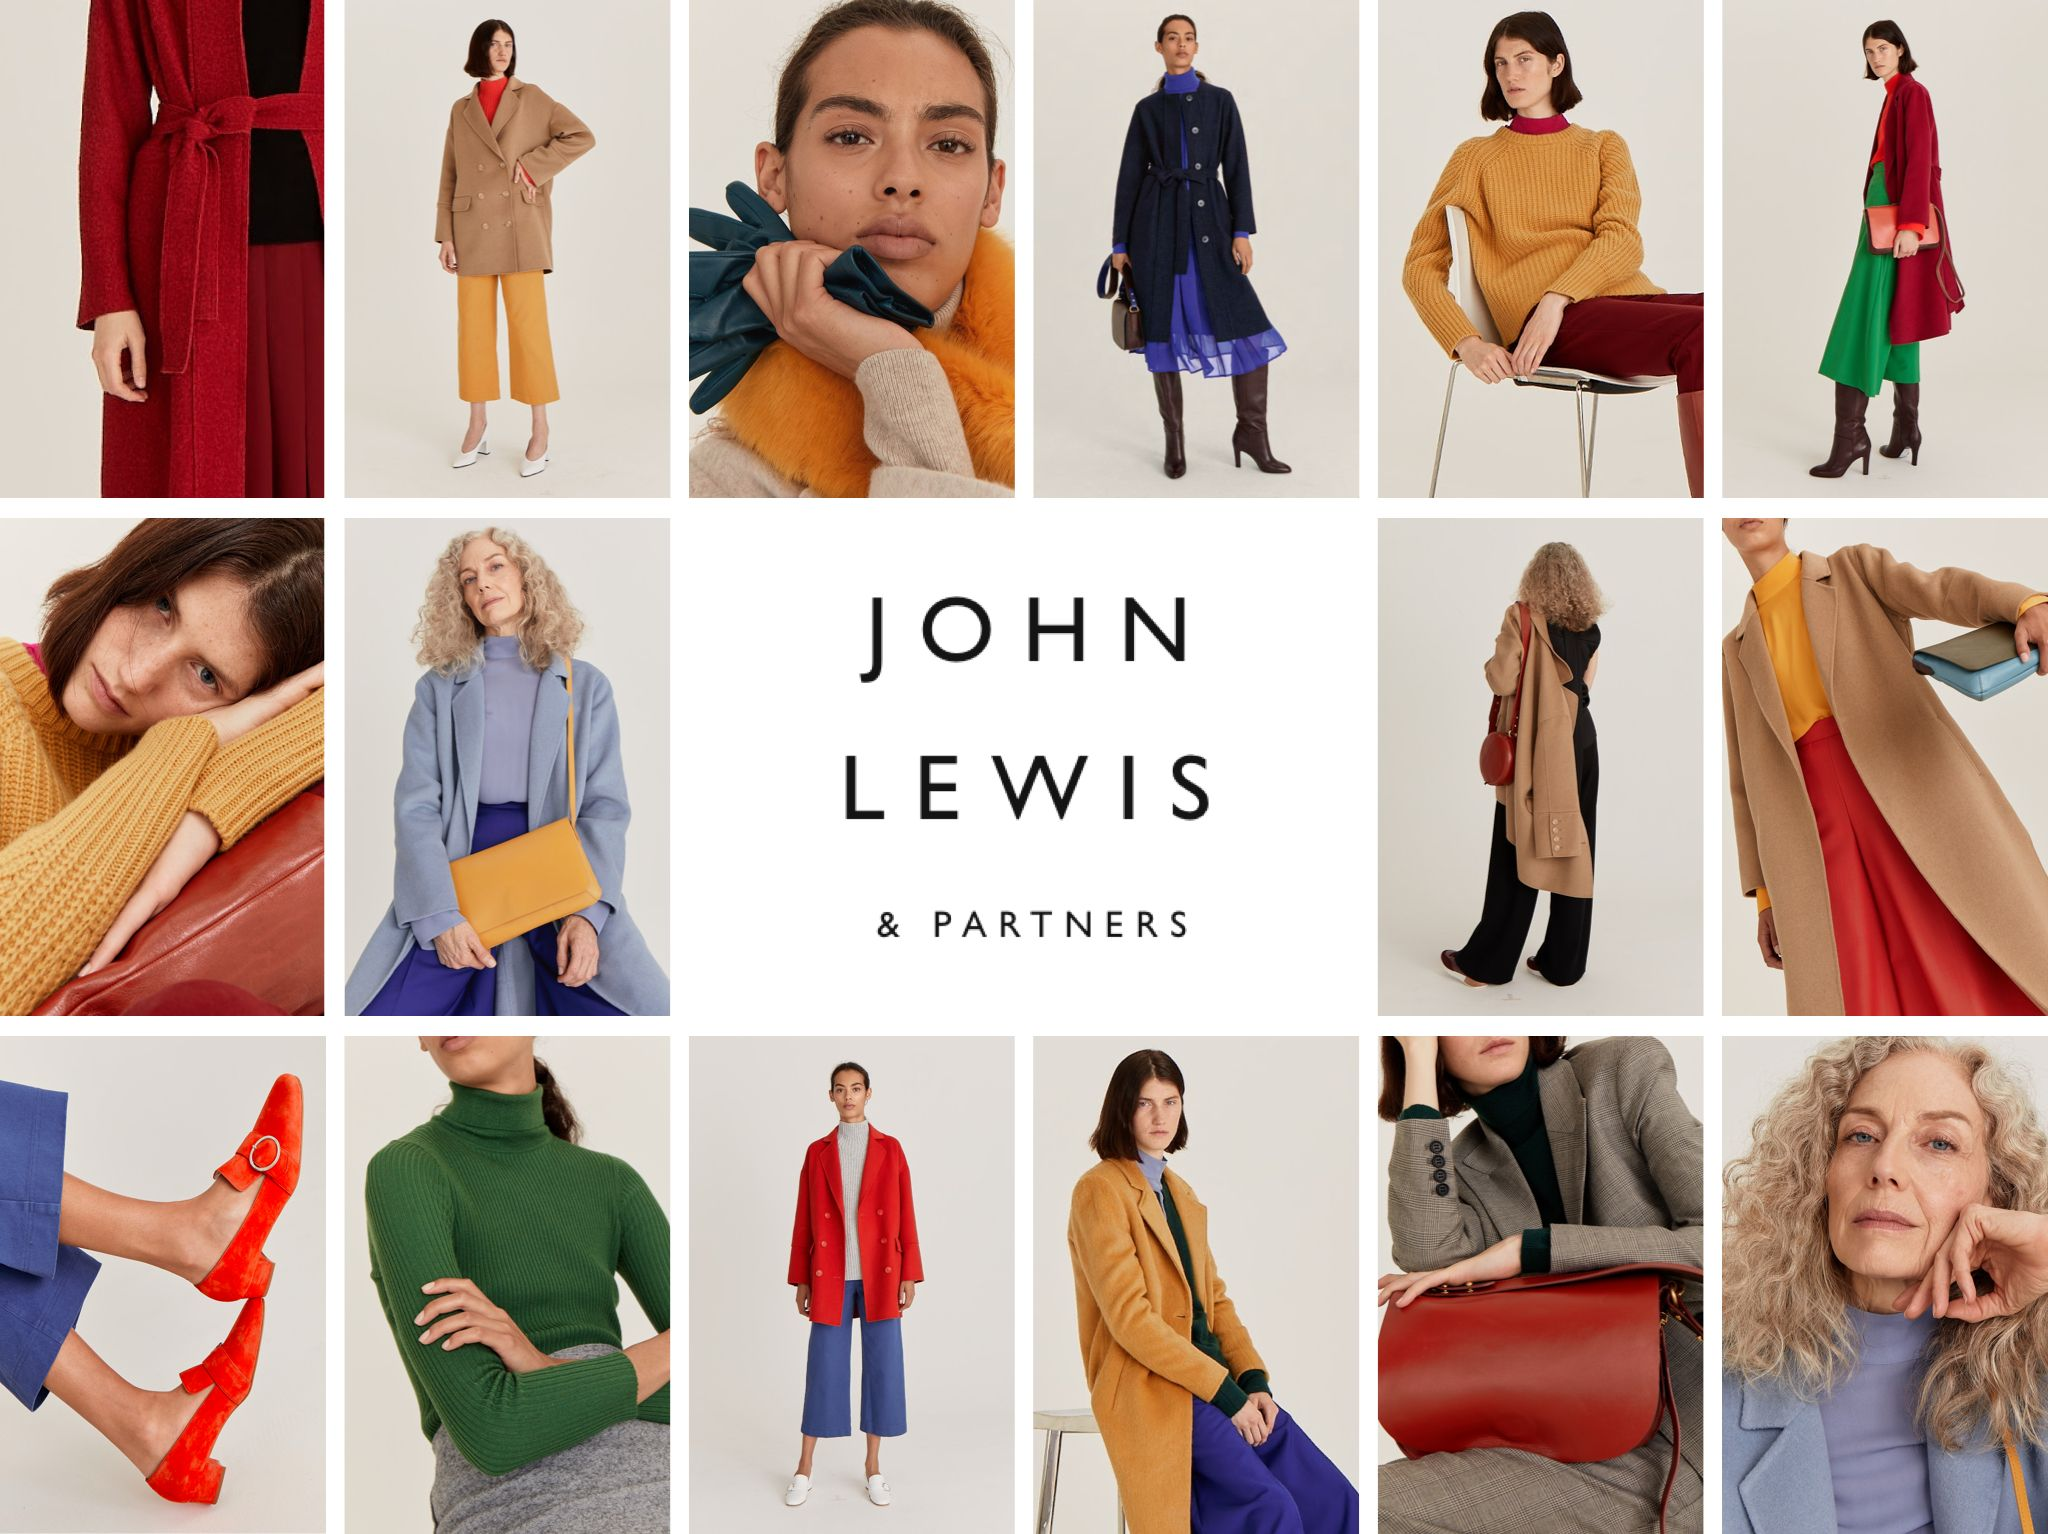 The New John Lewis Fashion Collection Everyone's Talking About